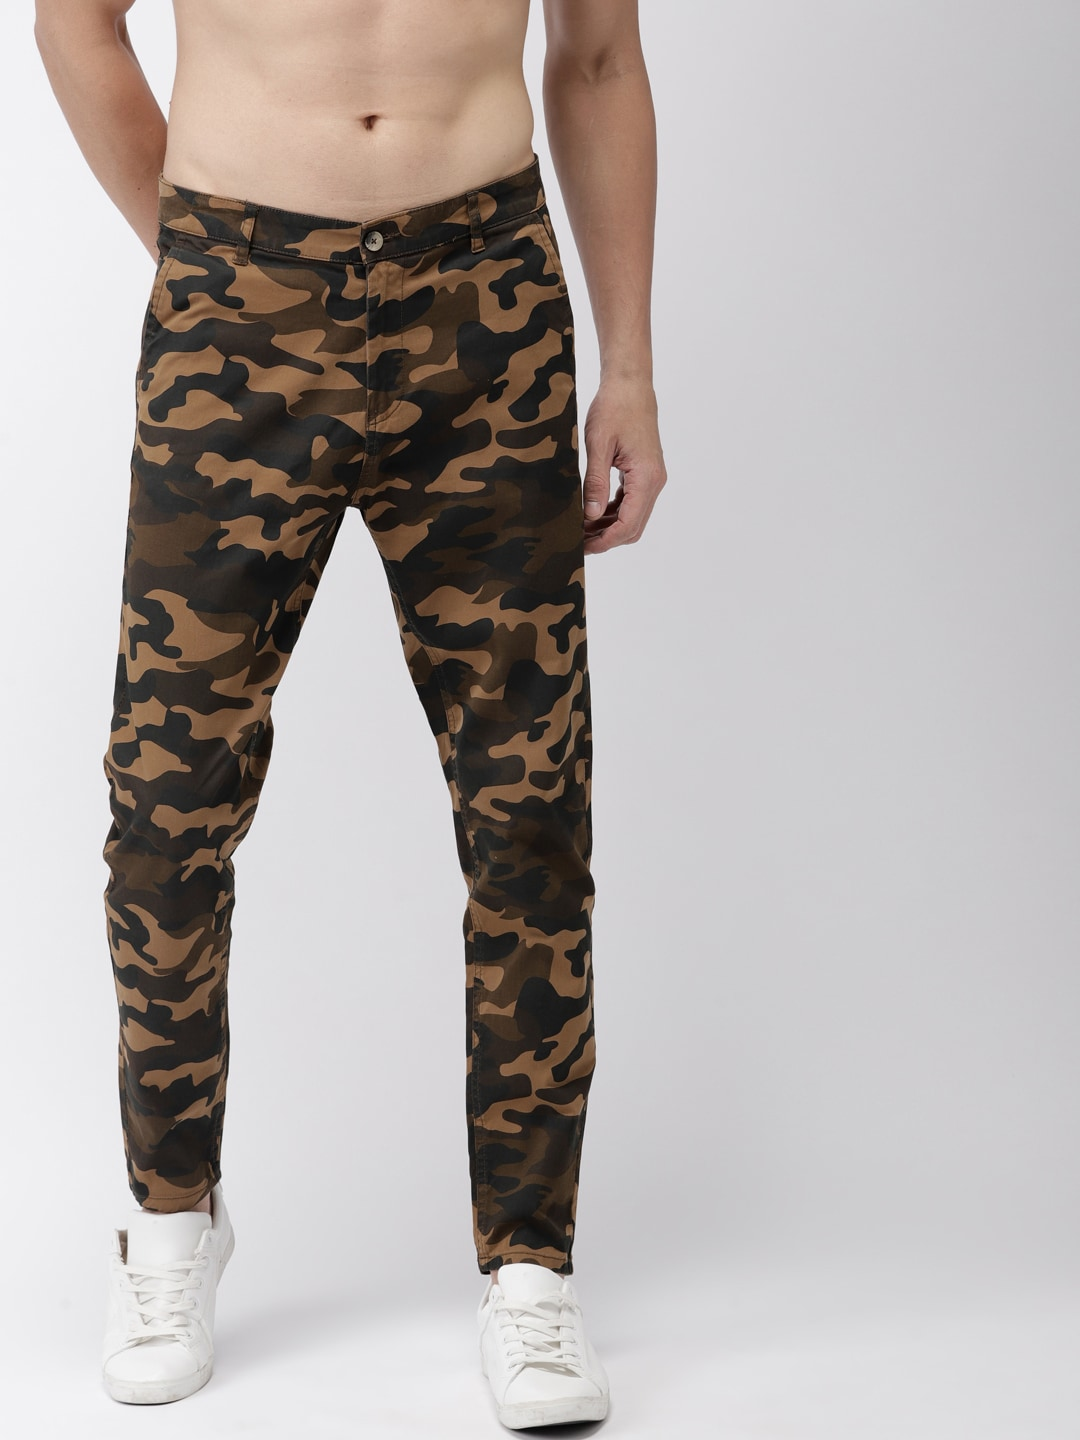 c6956a252 Camouflage Pants - Buy Camo Army Cargo Pants for Men   Women